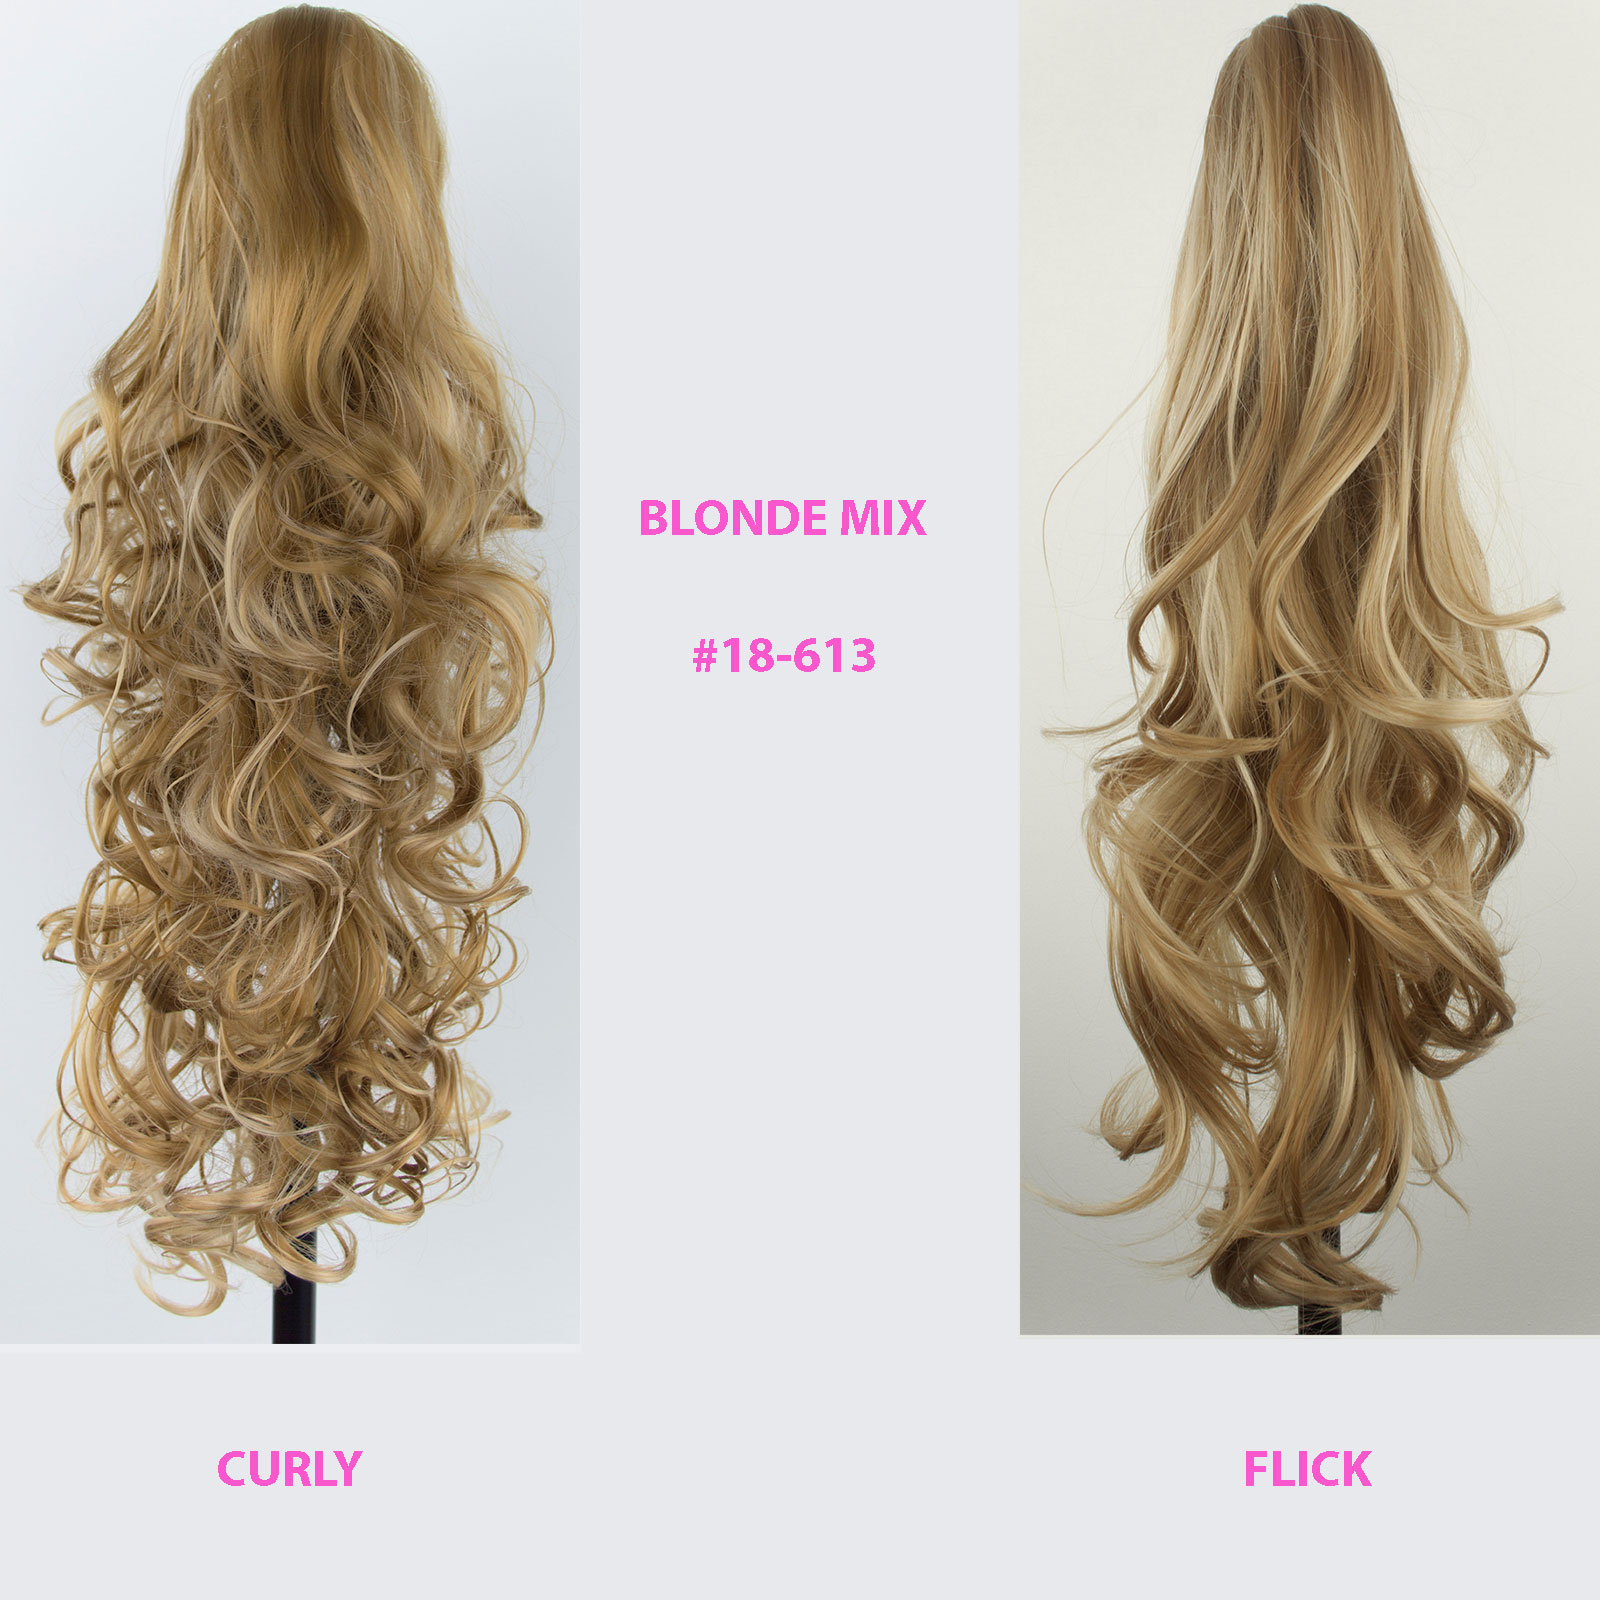 Ponytail clip in hair extensions blonde mix 18613 reversible 4 ponytail clip in hair extensions blonde mix 18 pmusecretfo Choice Image